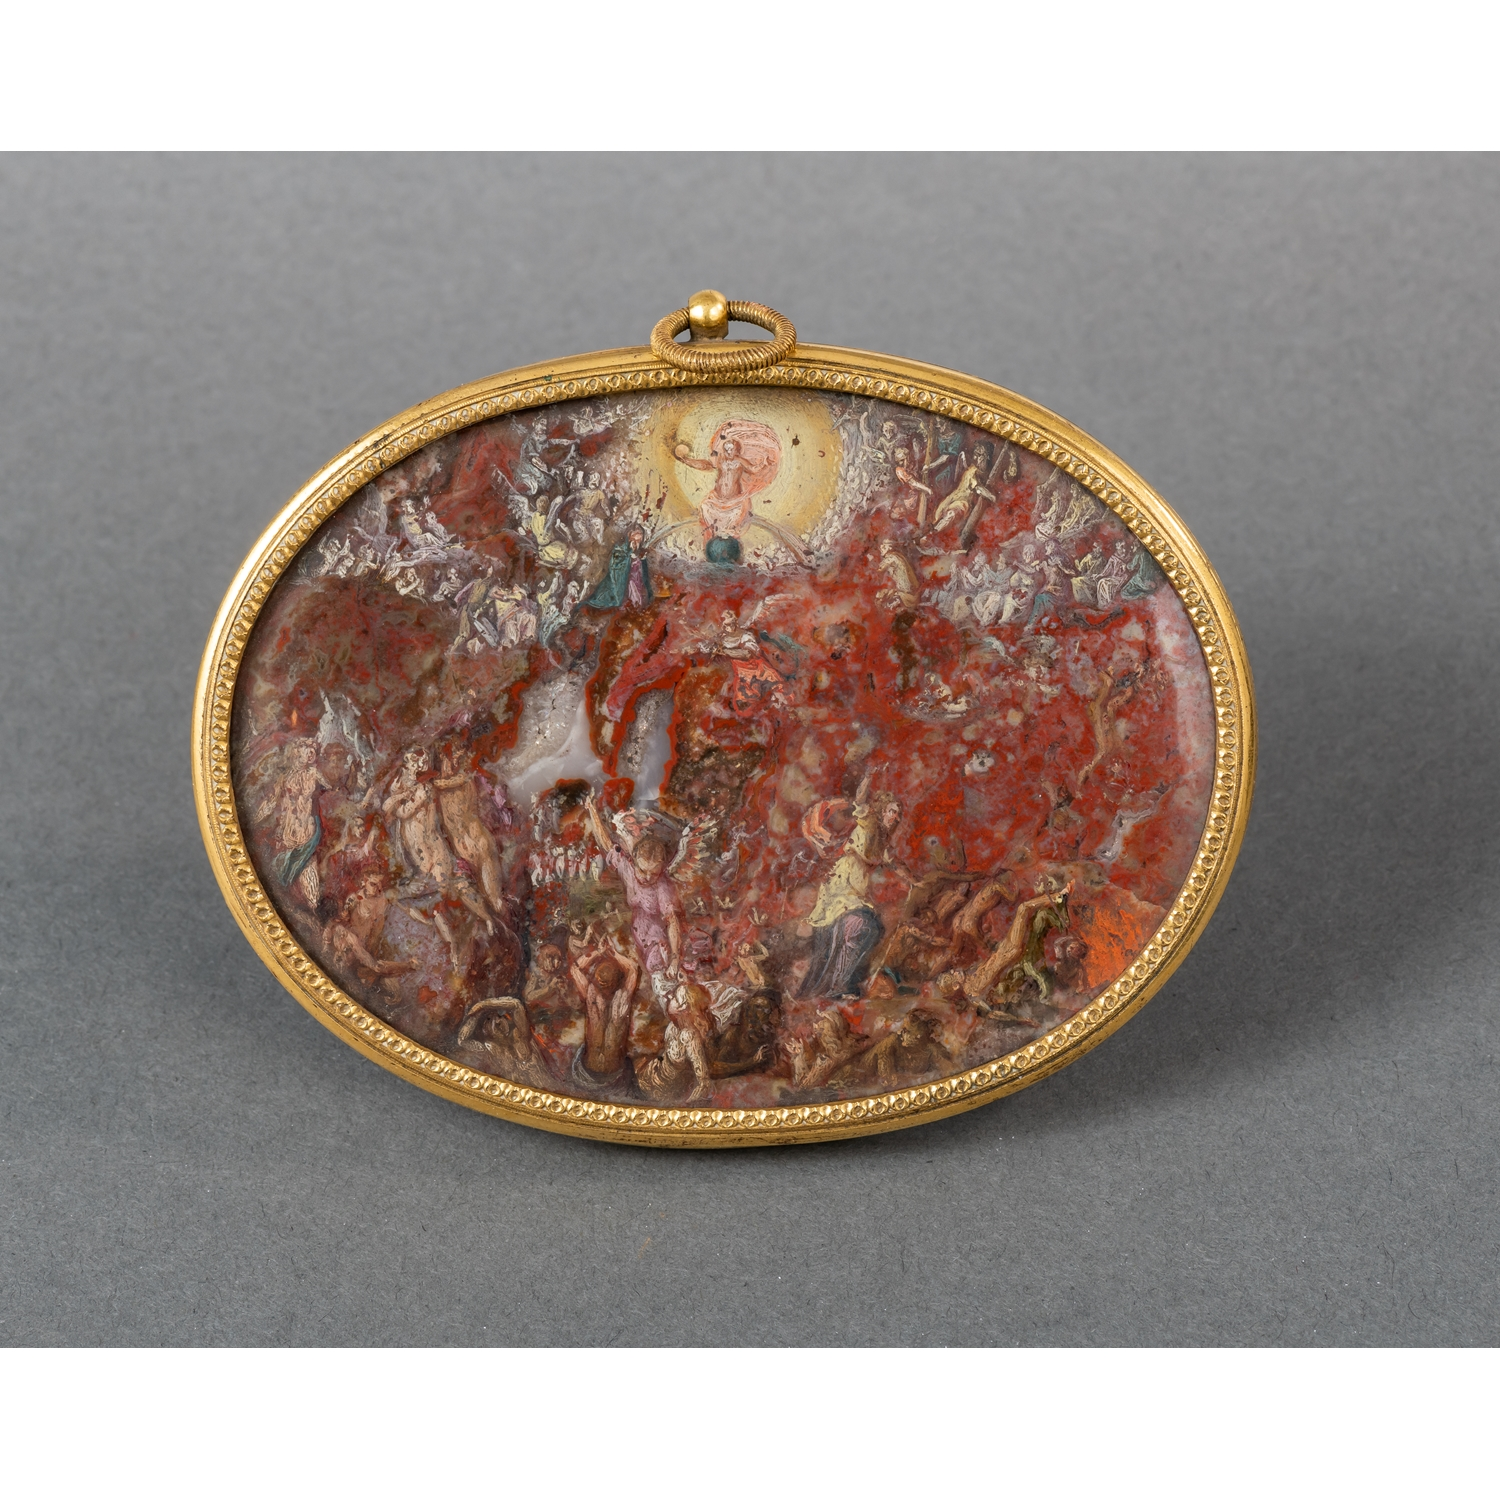 THE LAST JUDGMENT PAINT ON CHALCEDONY ITALY EARLY 17TH CENTURY